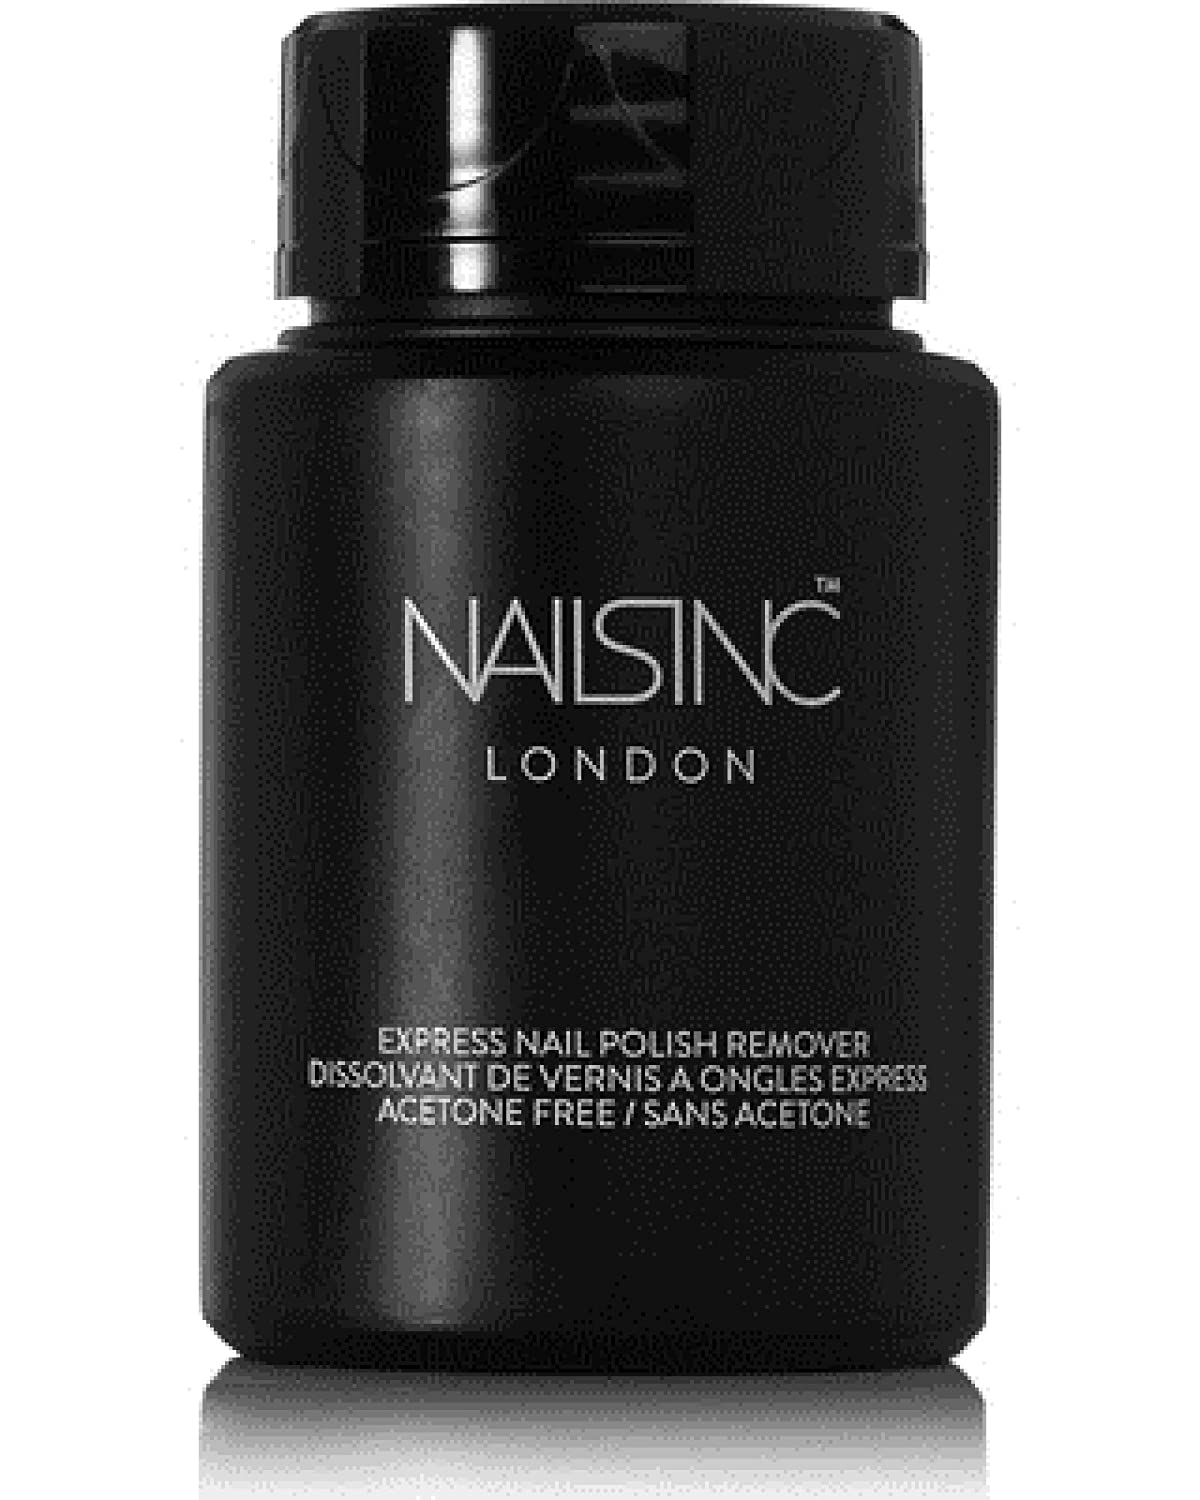 Nails Inc Express Nail Polish Remover Pot: Amazon.co.uk: Beauty